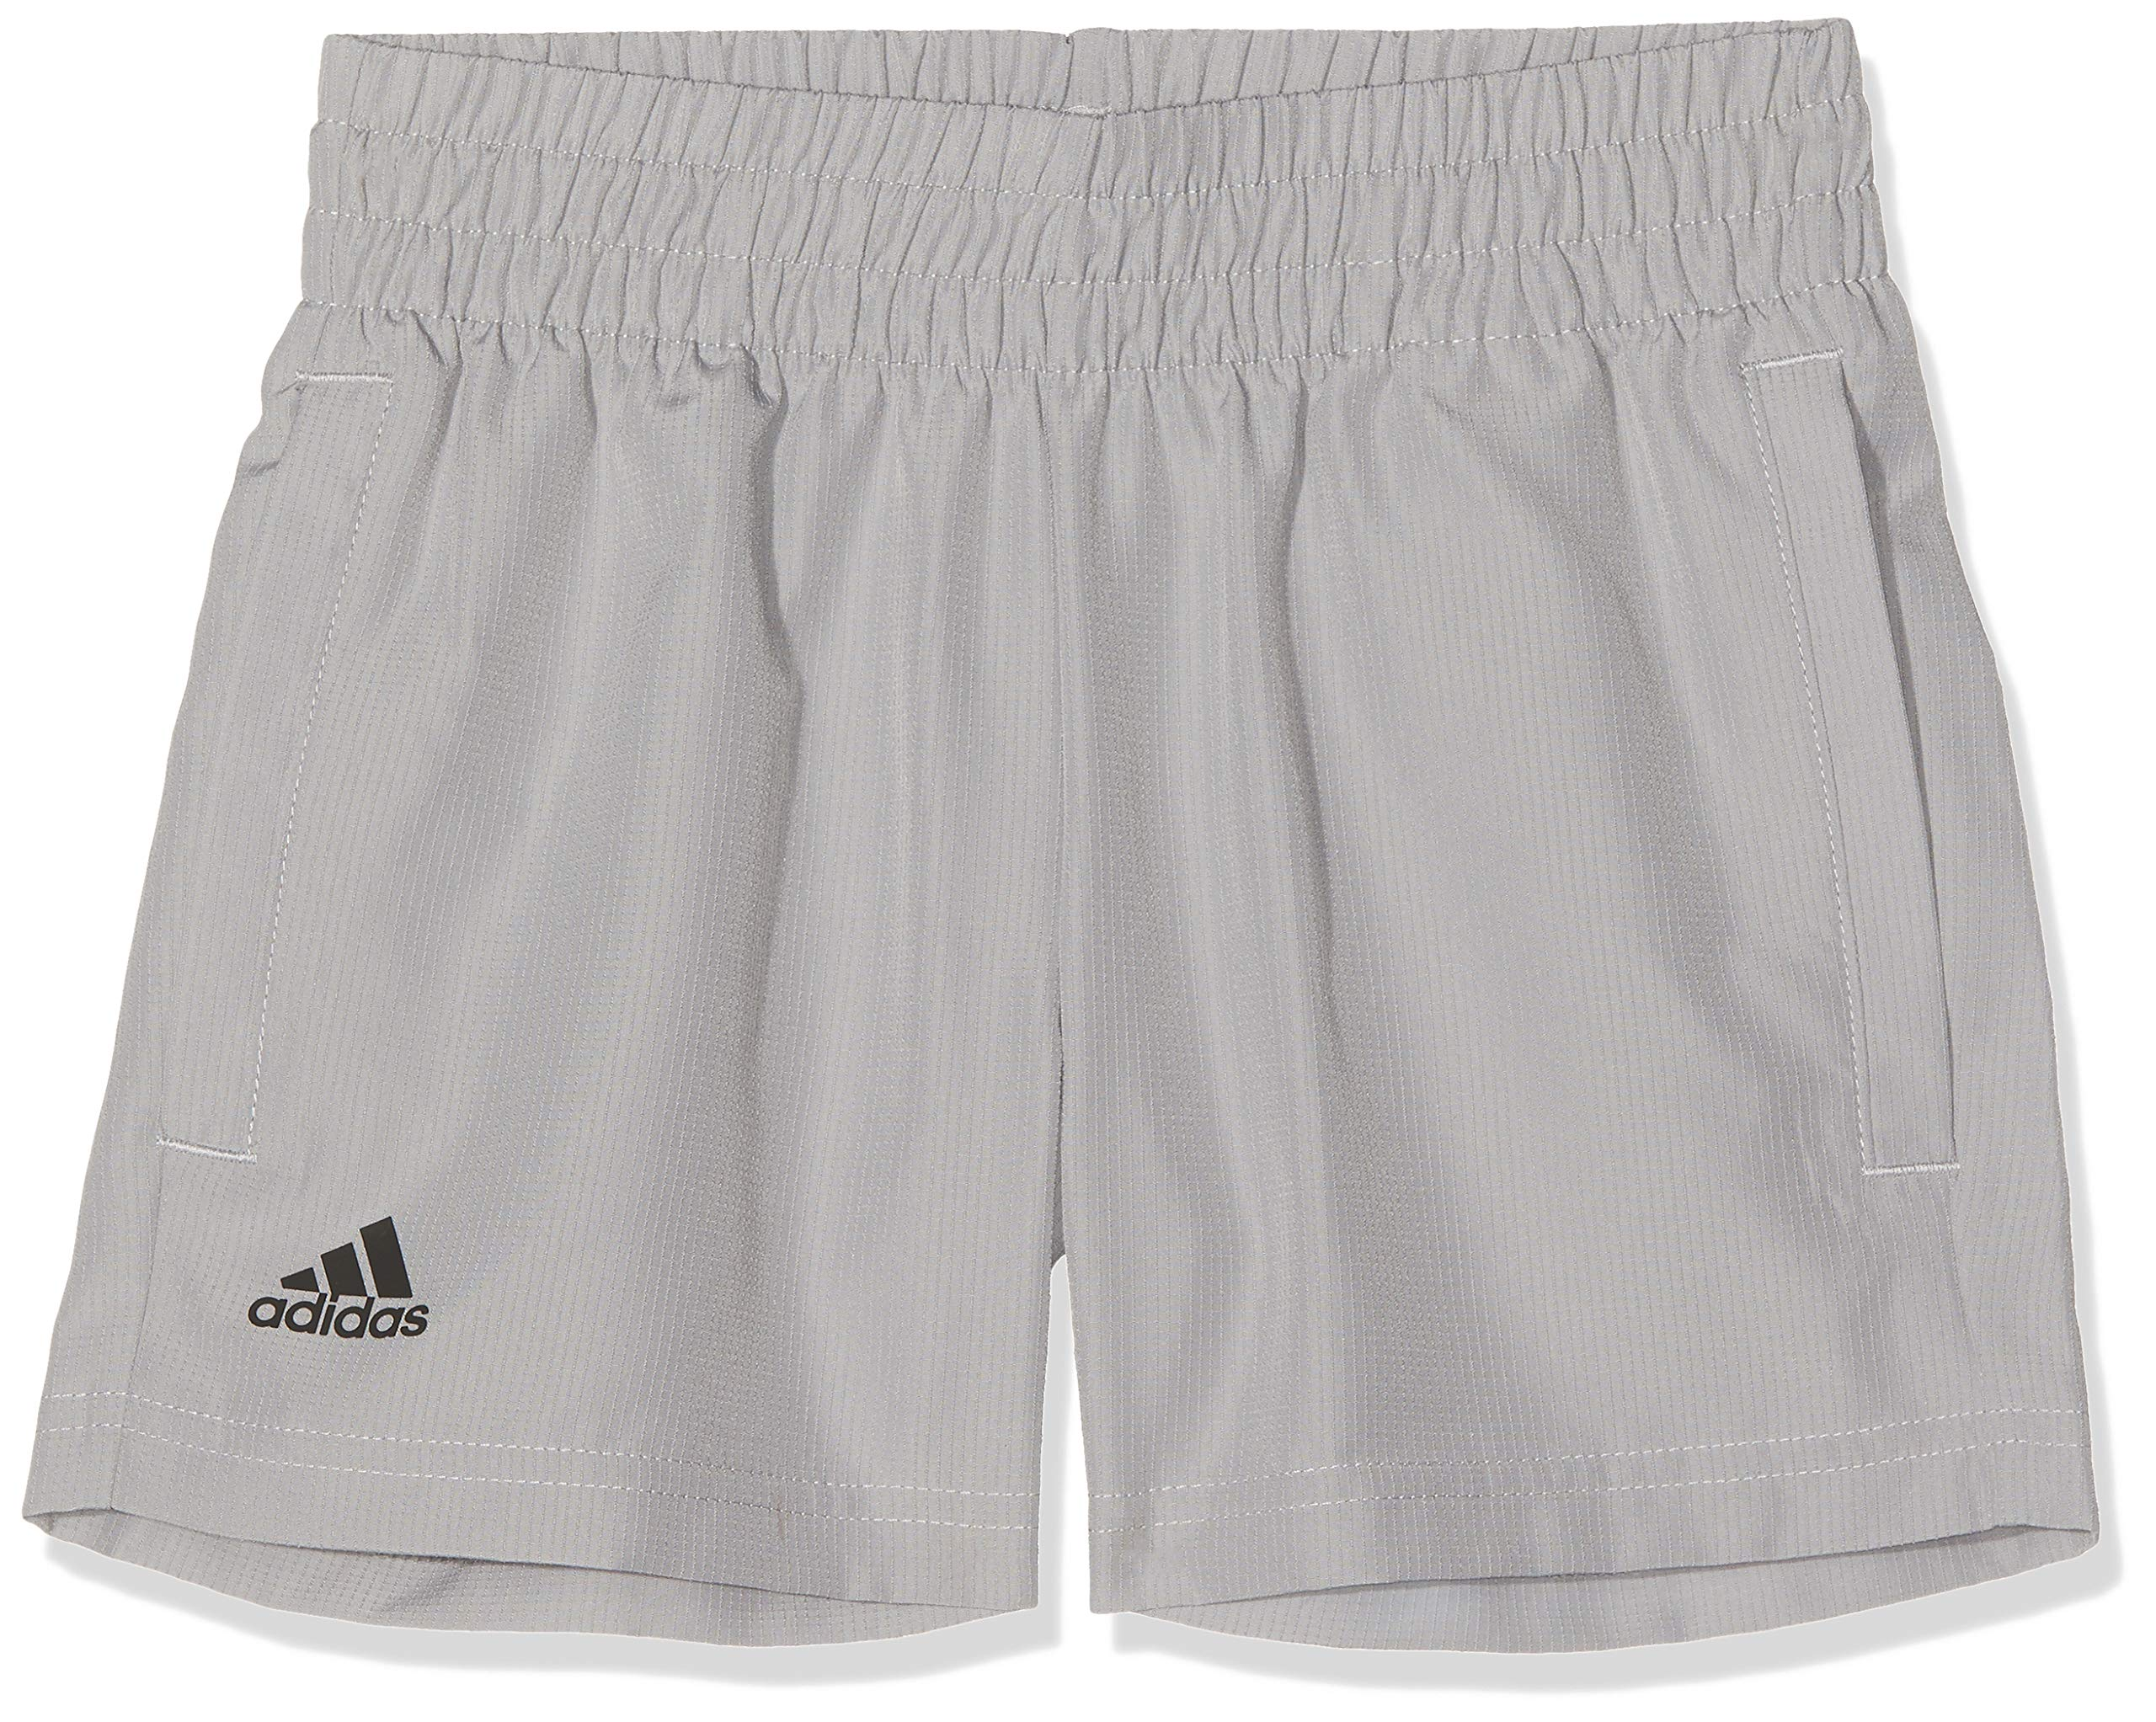 adidas Boys Shorts Kids Tennis Club Pants Training Running Fashion (128/7-8 Years)